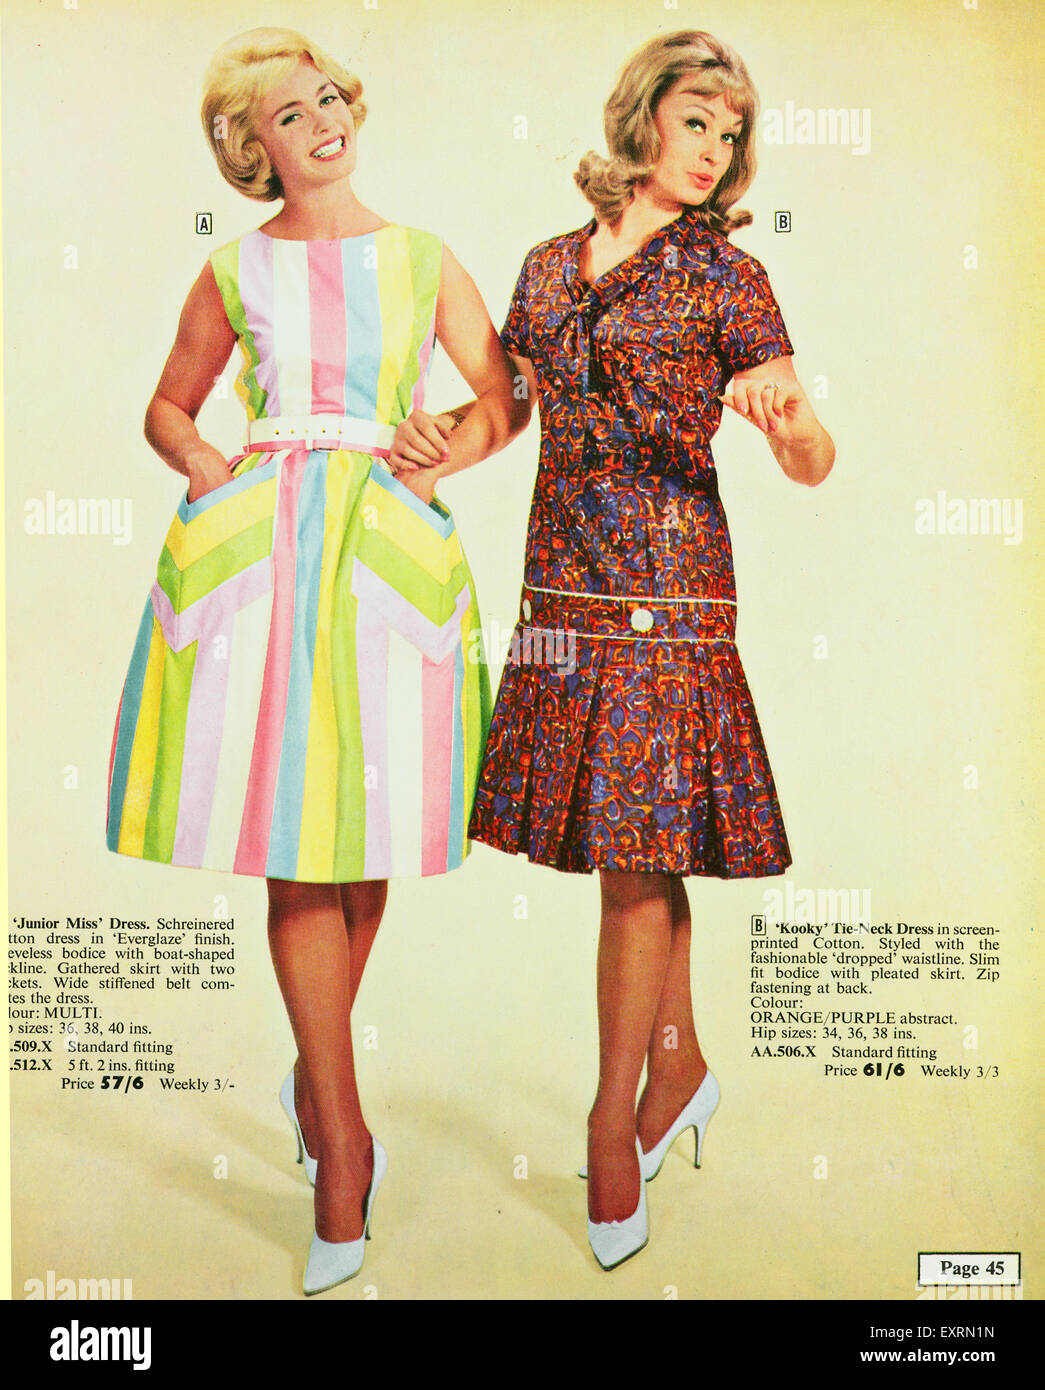 feab7d3694 1960s UK Womens Fashion Catalogue/ Brochure Plate - Stock Image